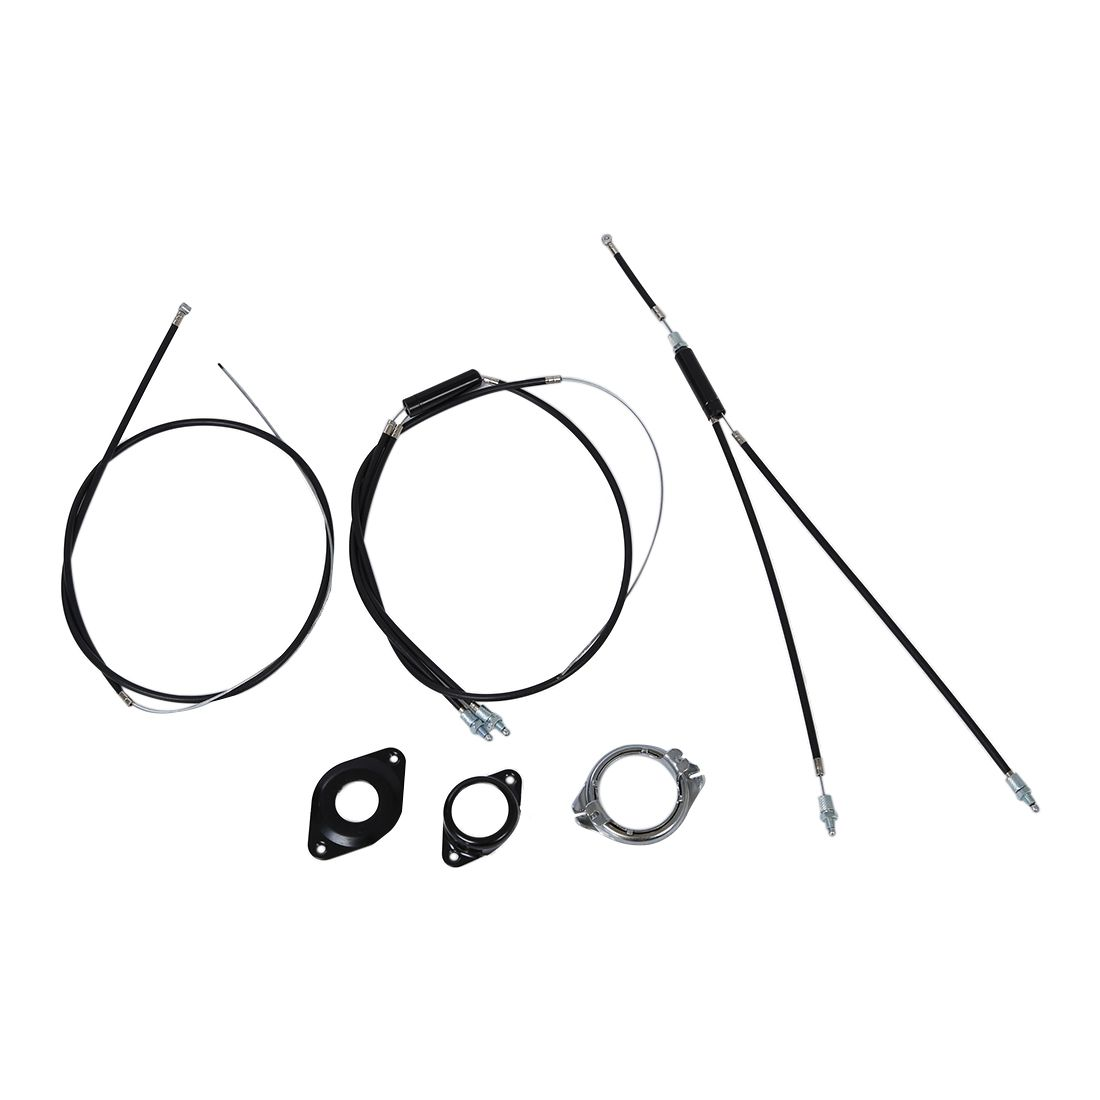 Bmx Brake Cable Front Rear Extra Long Gyro Rotor Spinner A8a8